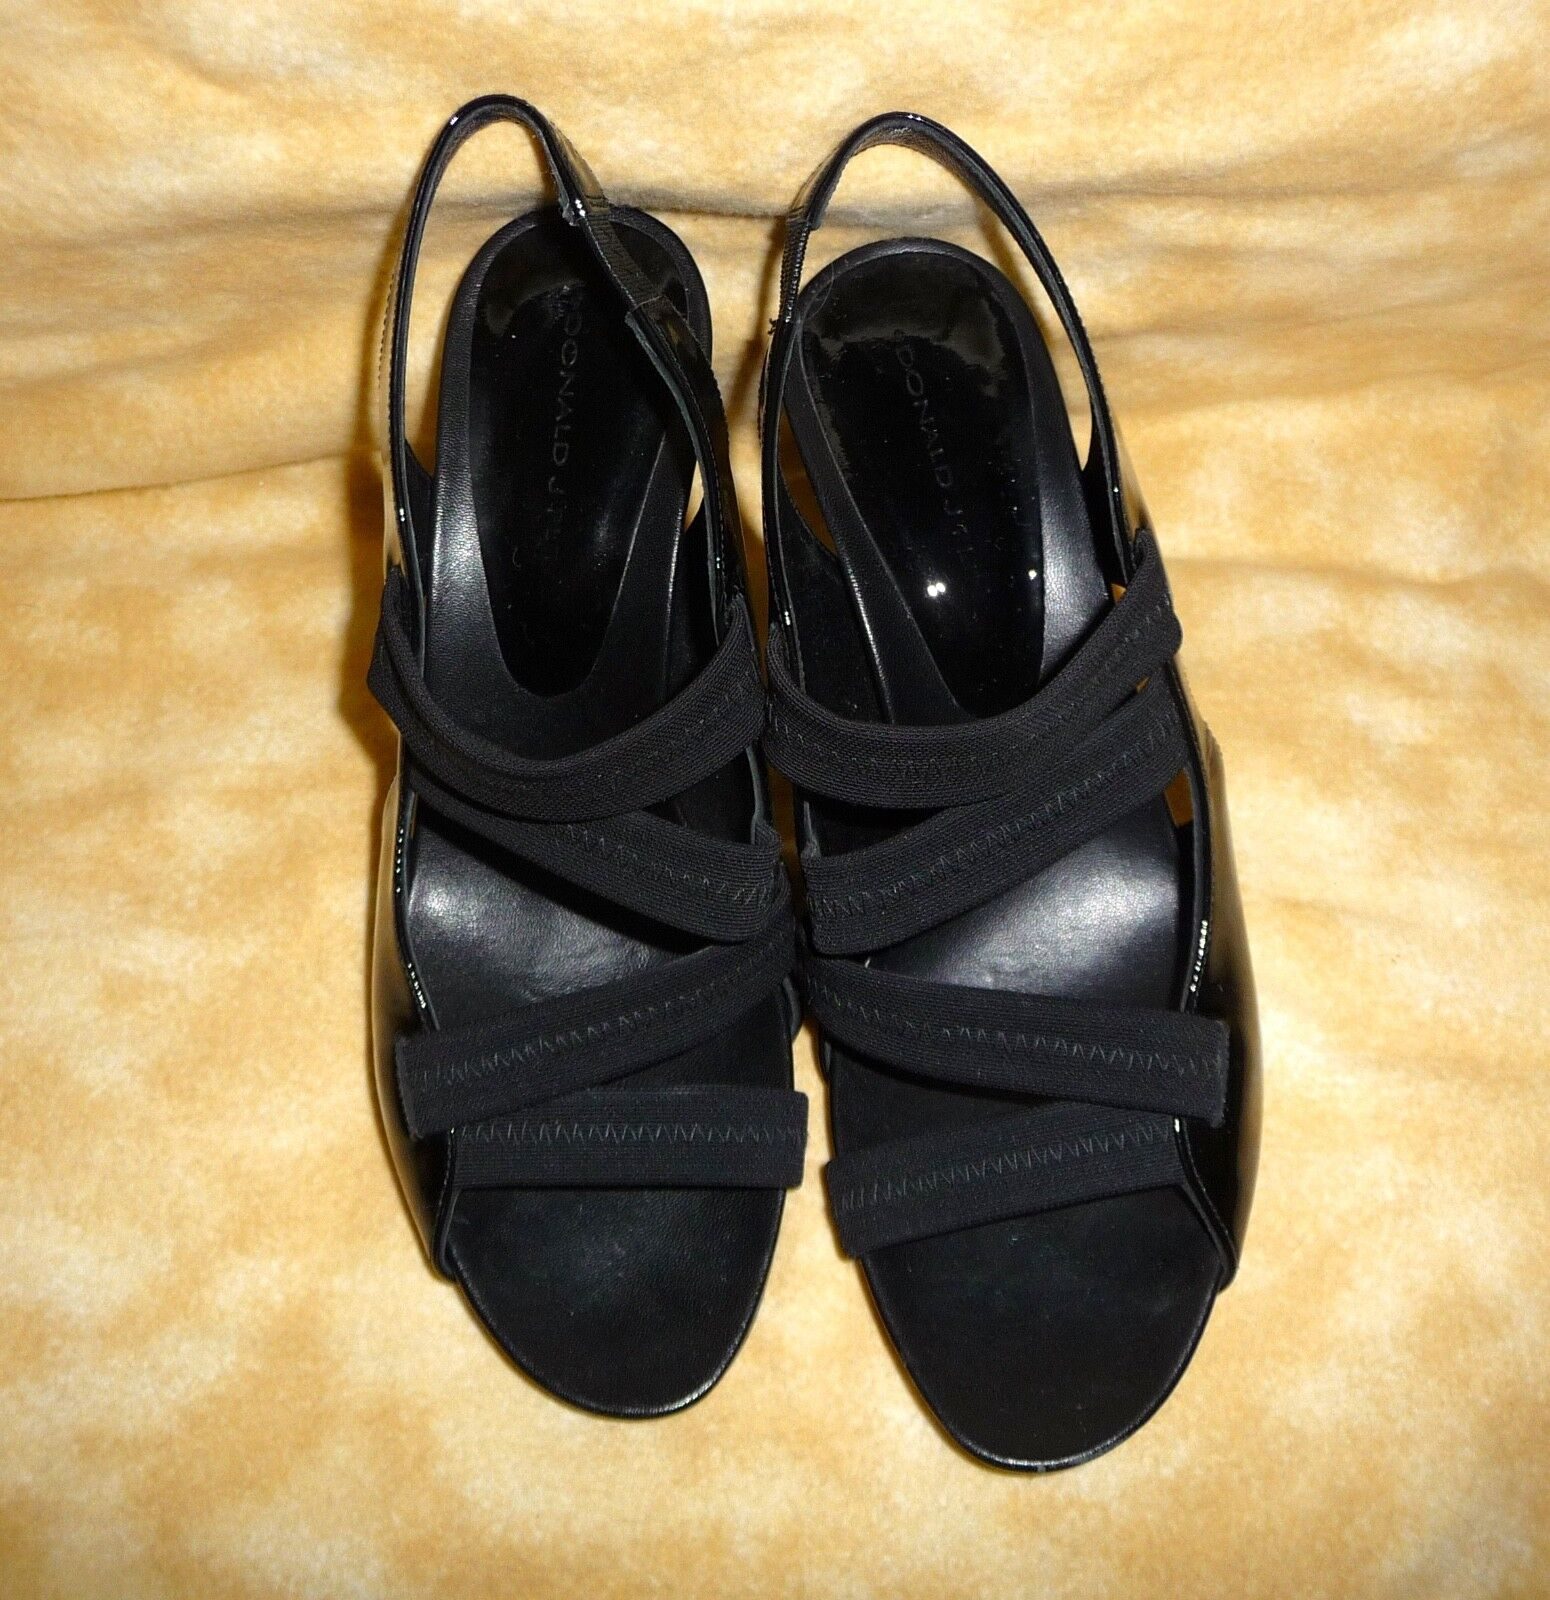 Donald j pliner black high heal shoe size 8.5 8.5 8.5 woman made in spain 60f8f4